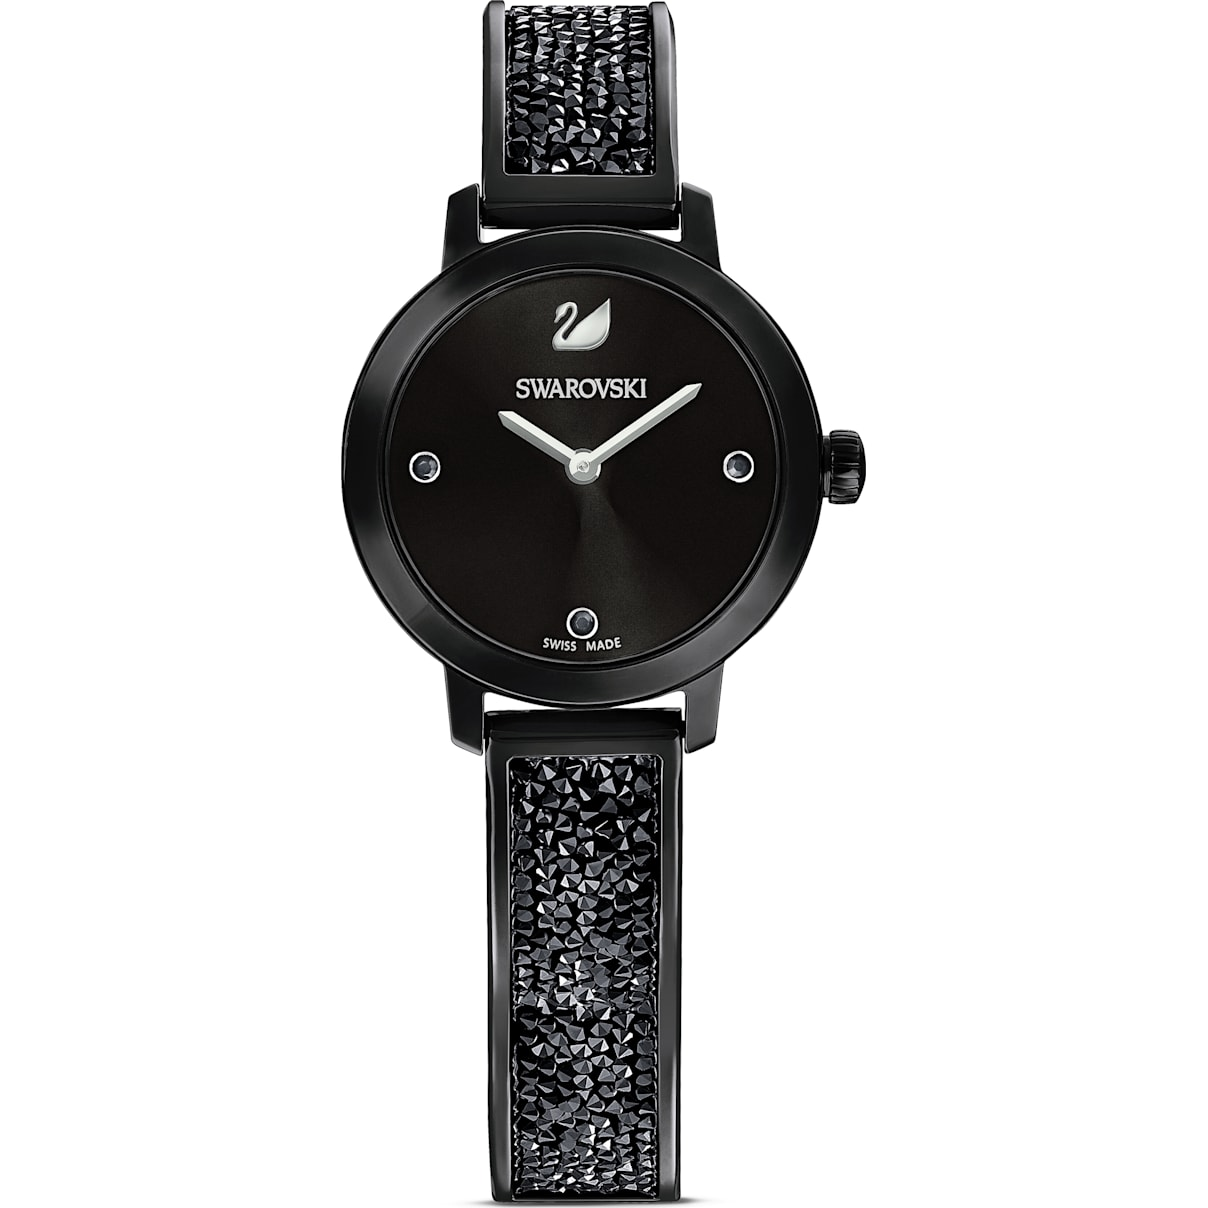 Swarovski Cosmic Rock Watch, Metal bracelet, Black, Black PVD